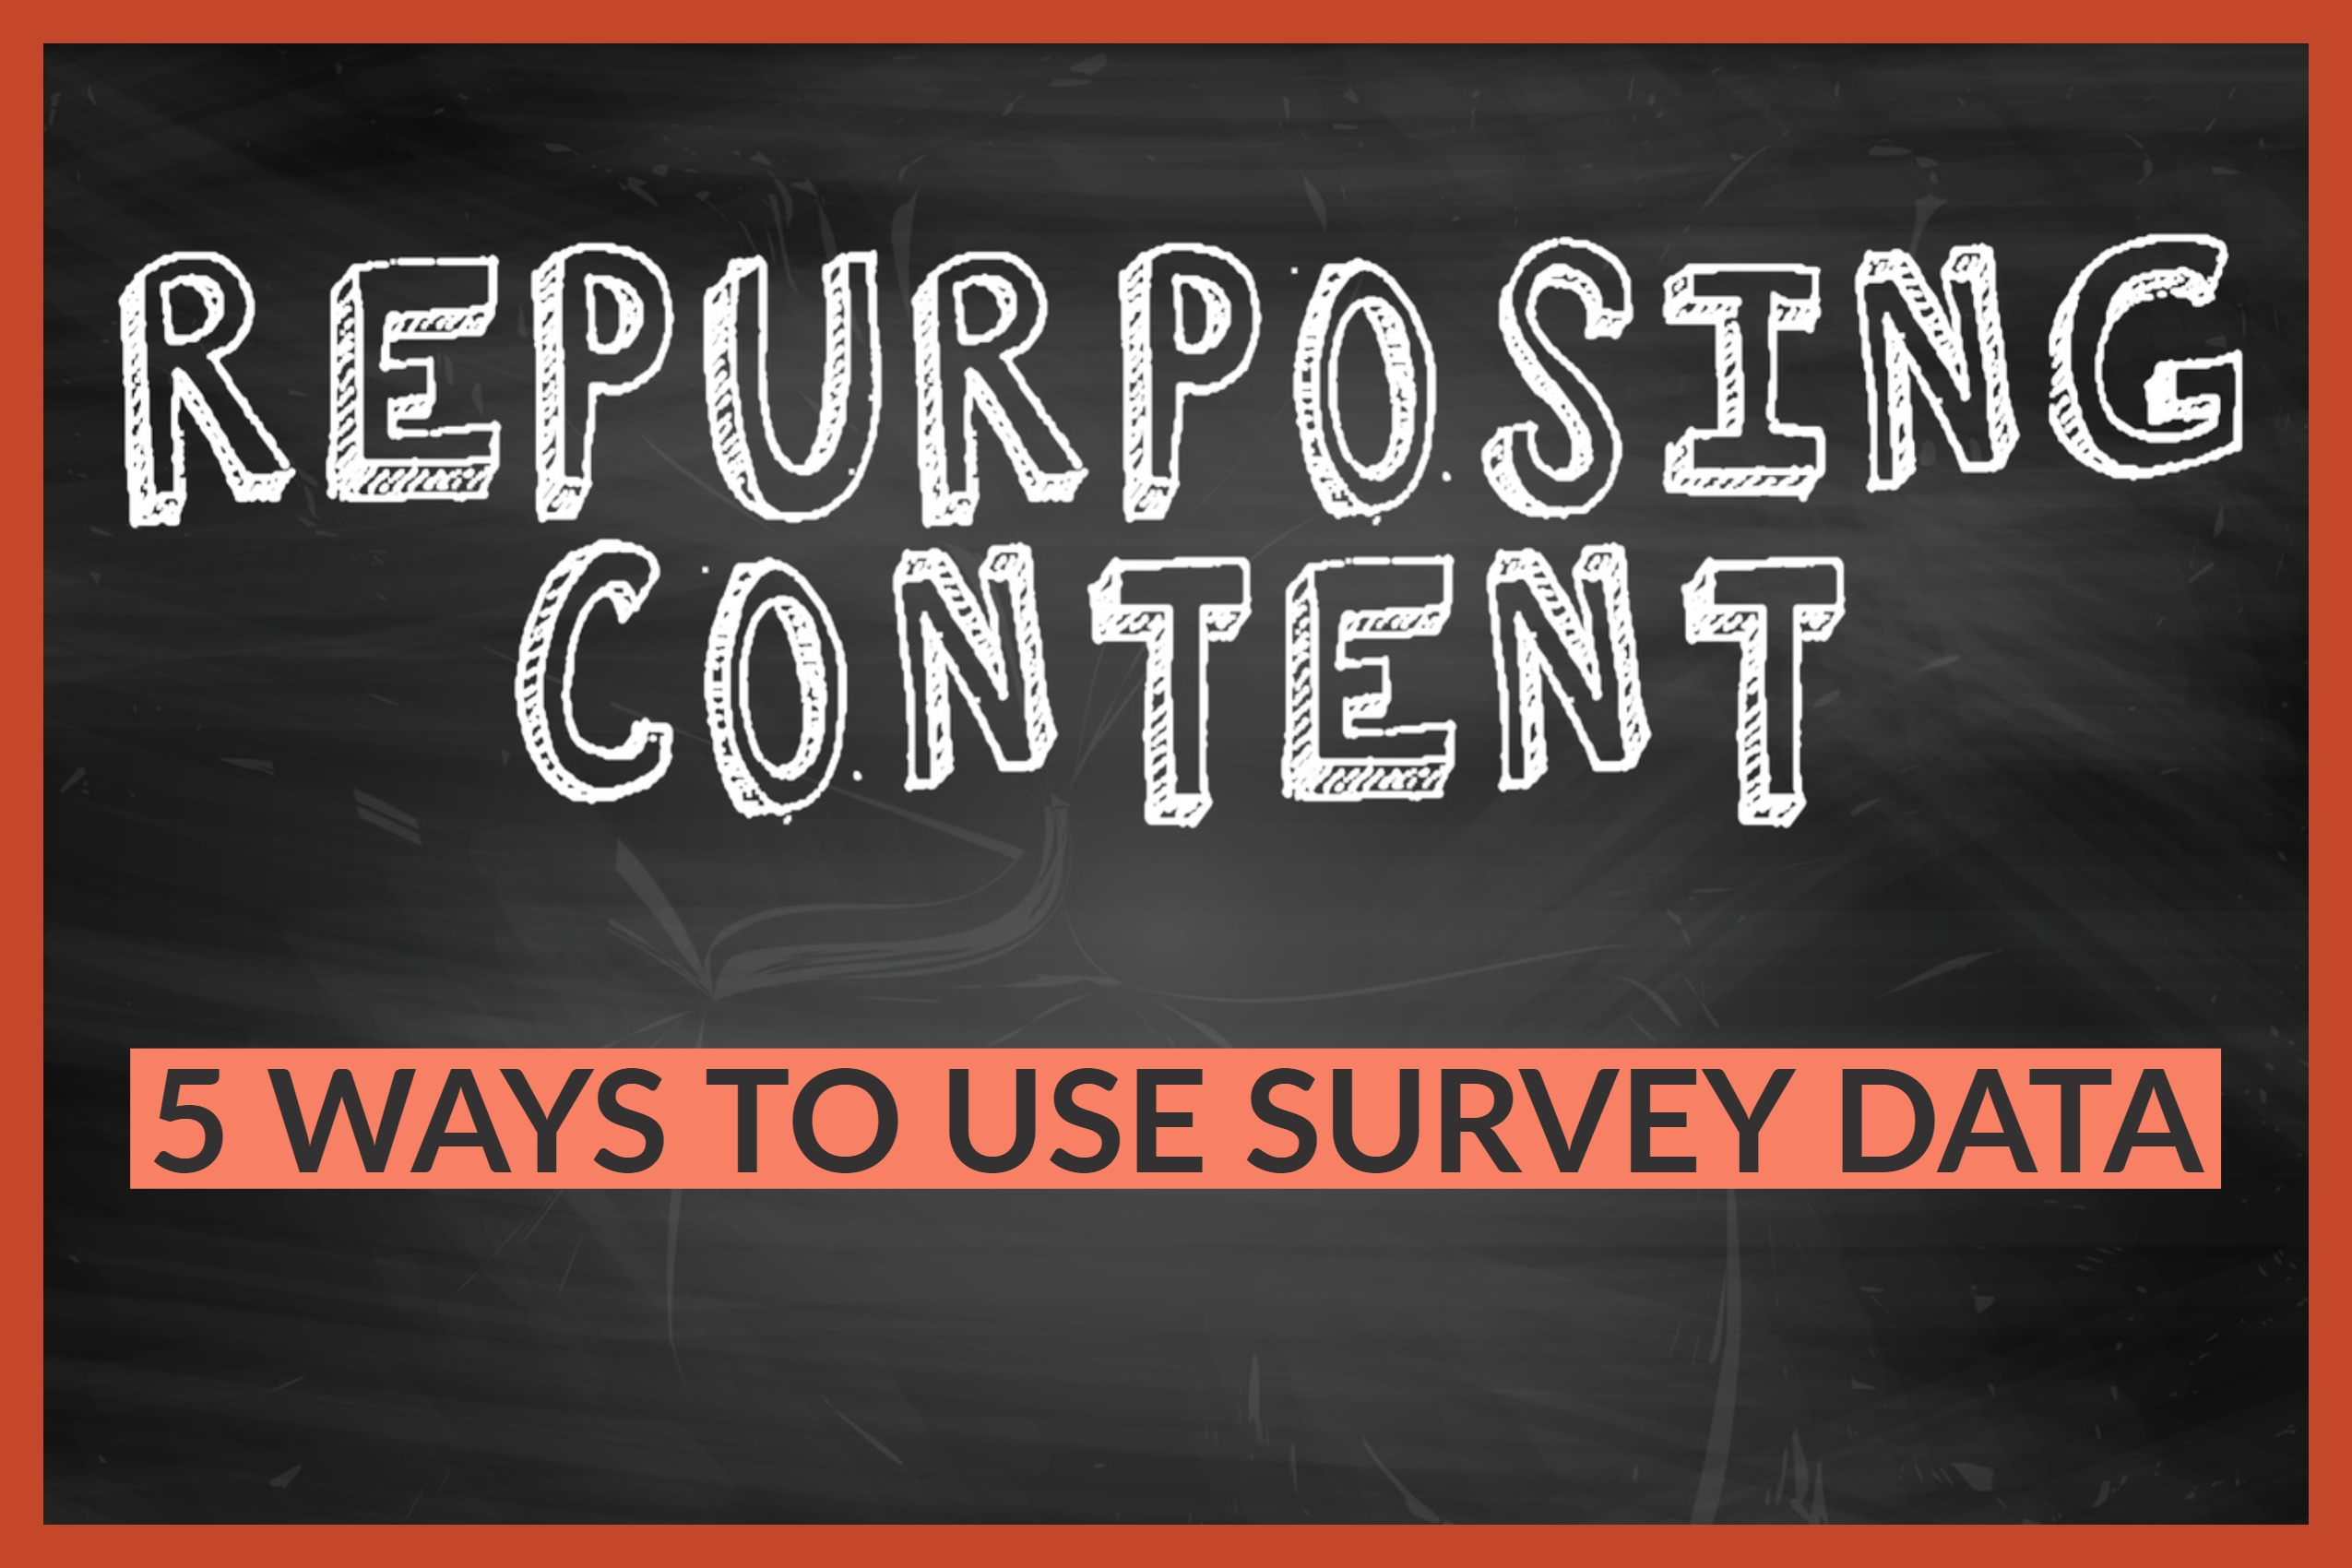 Repurposing Content Across Channels_ 5 Ways To Use Survey Data